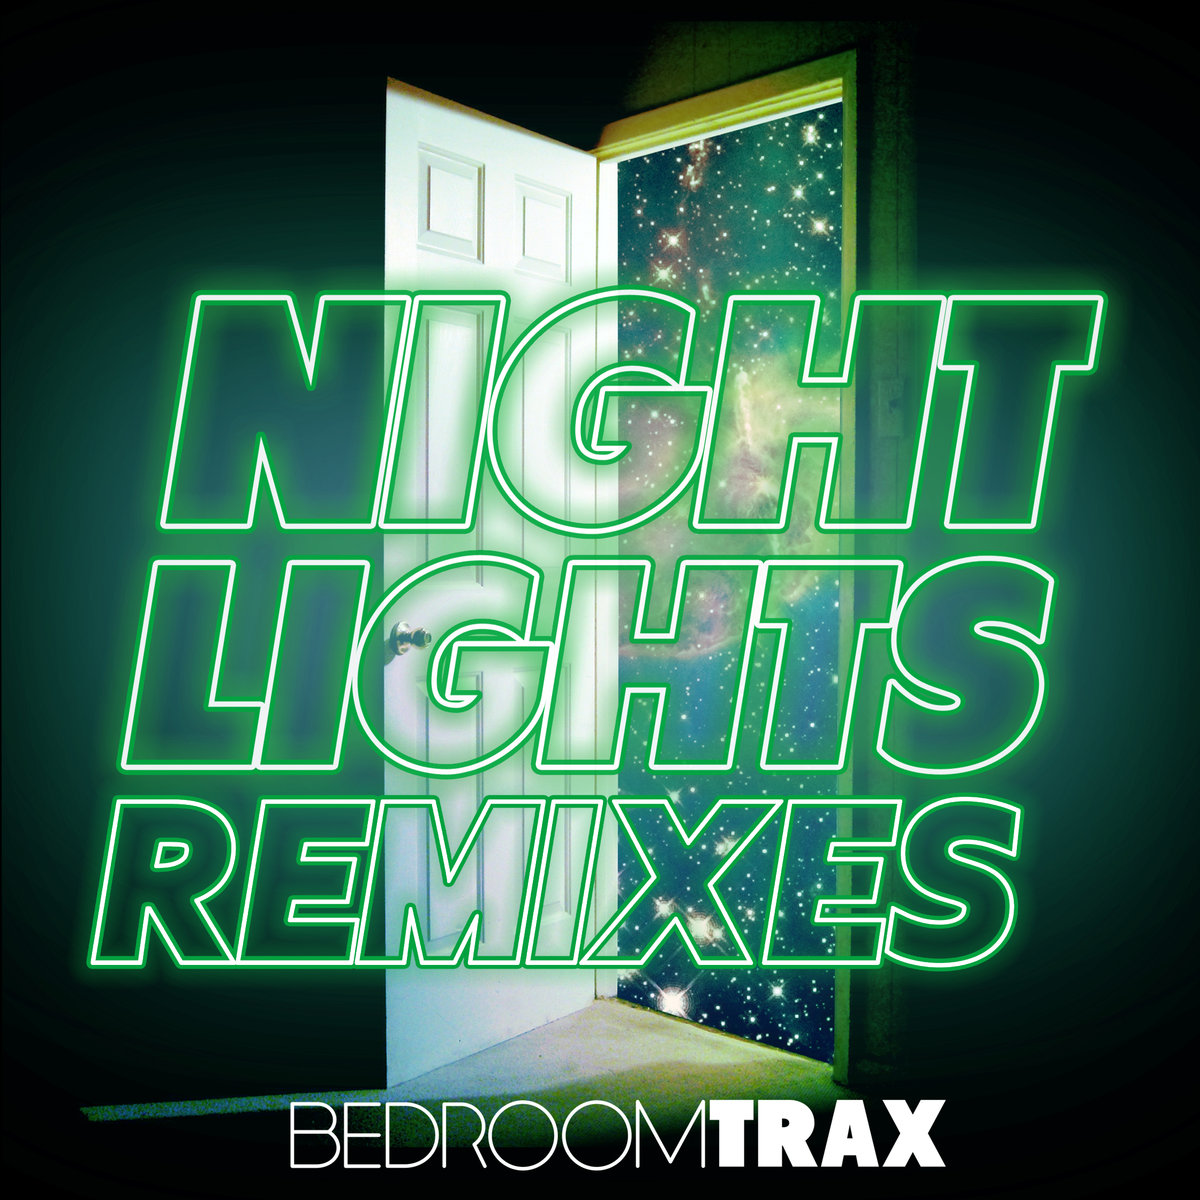 BedroomTrax - No Rush (TreyZilla Remix) @ 'Night Lights Remixes' album (electronic, dubstep)